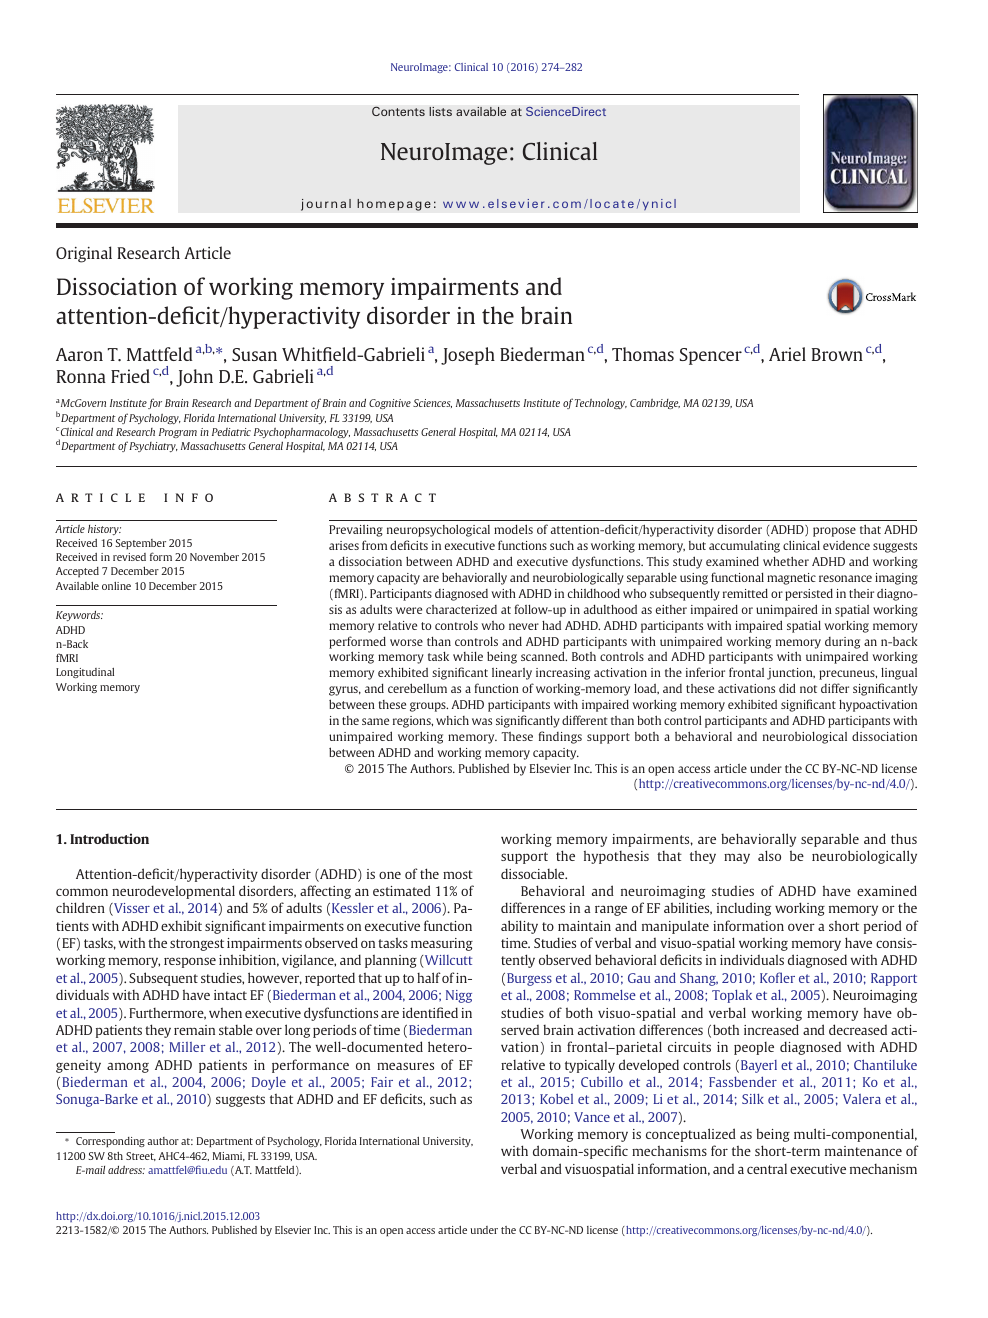 Dissociation of working memory impairments and attention-deficit